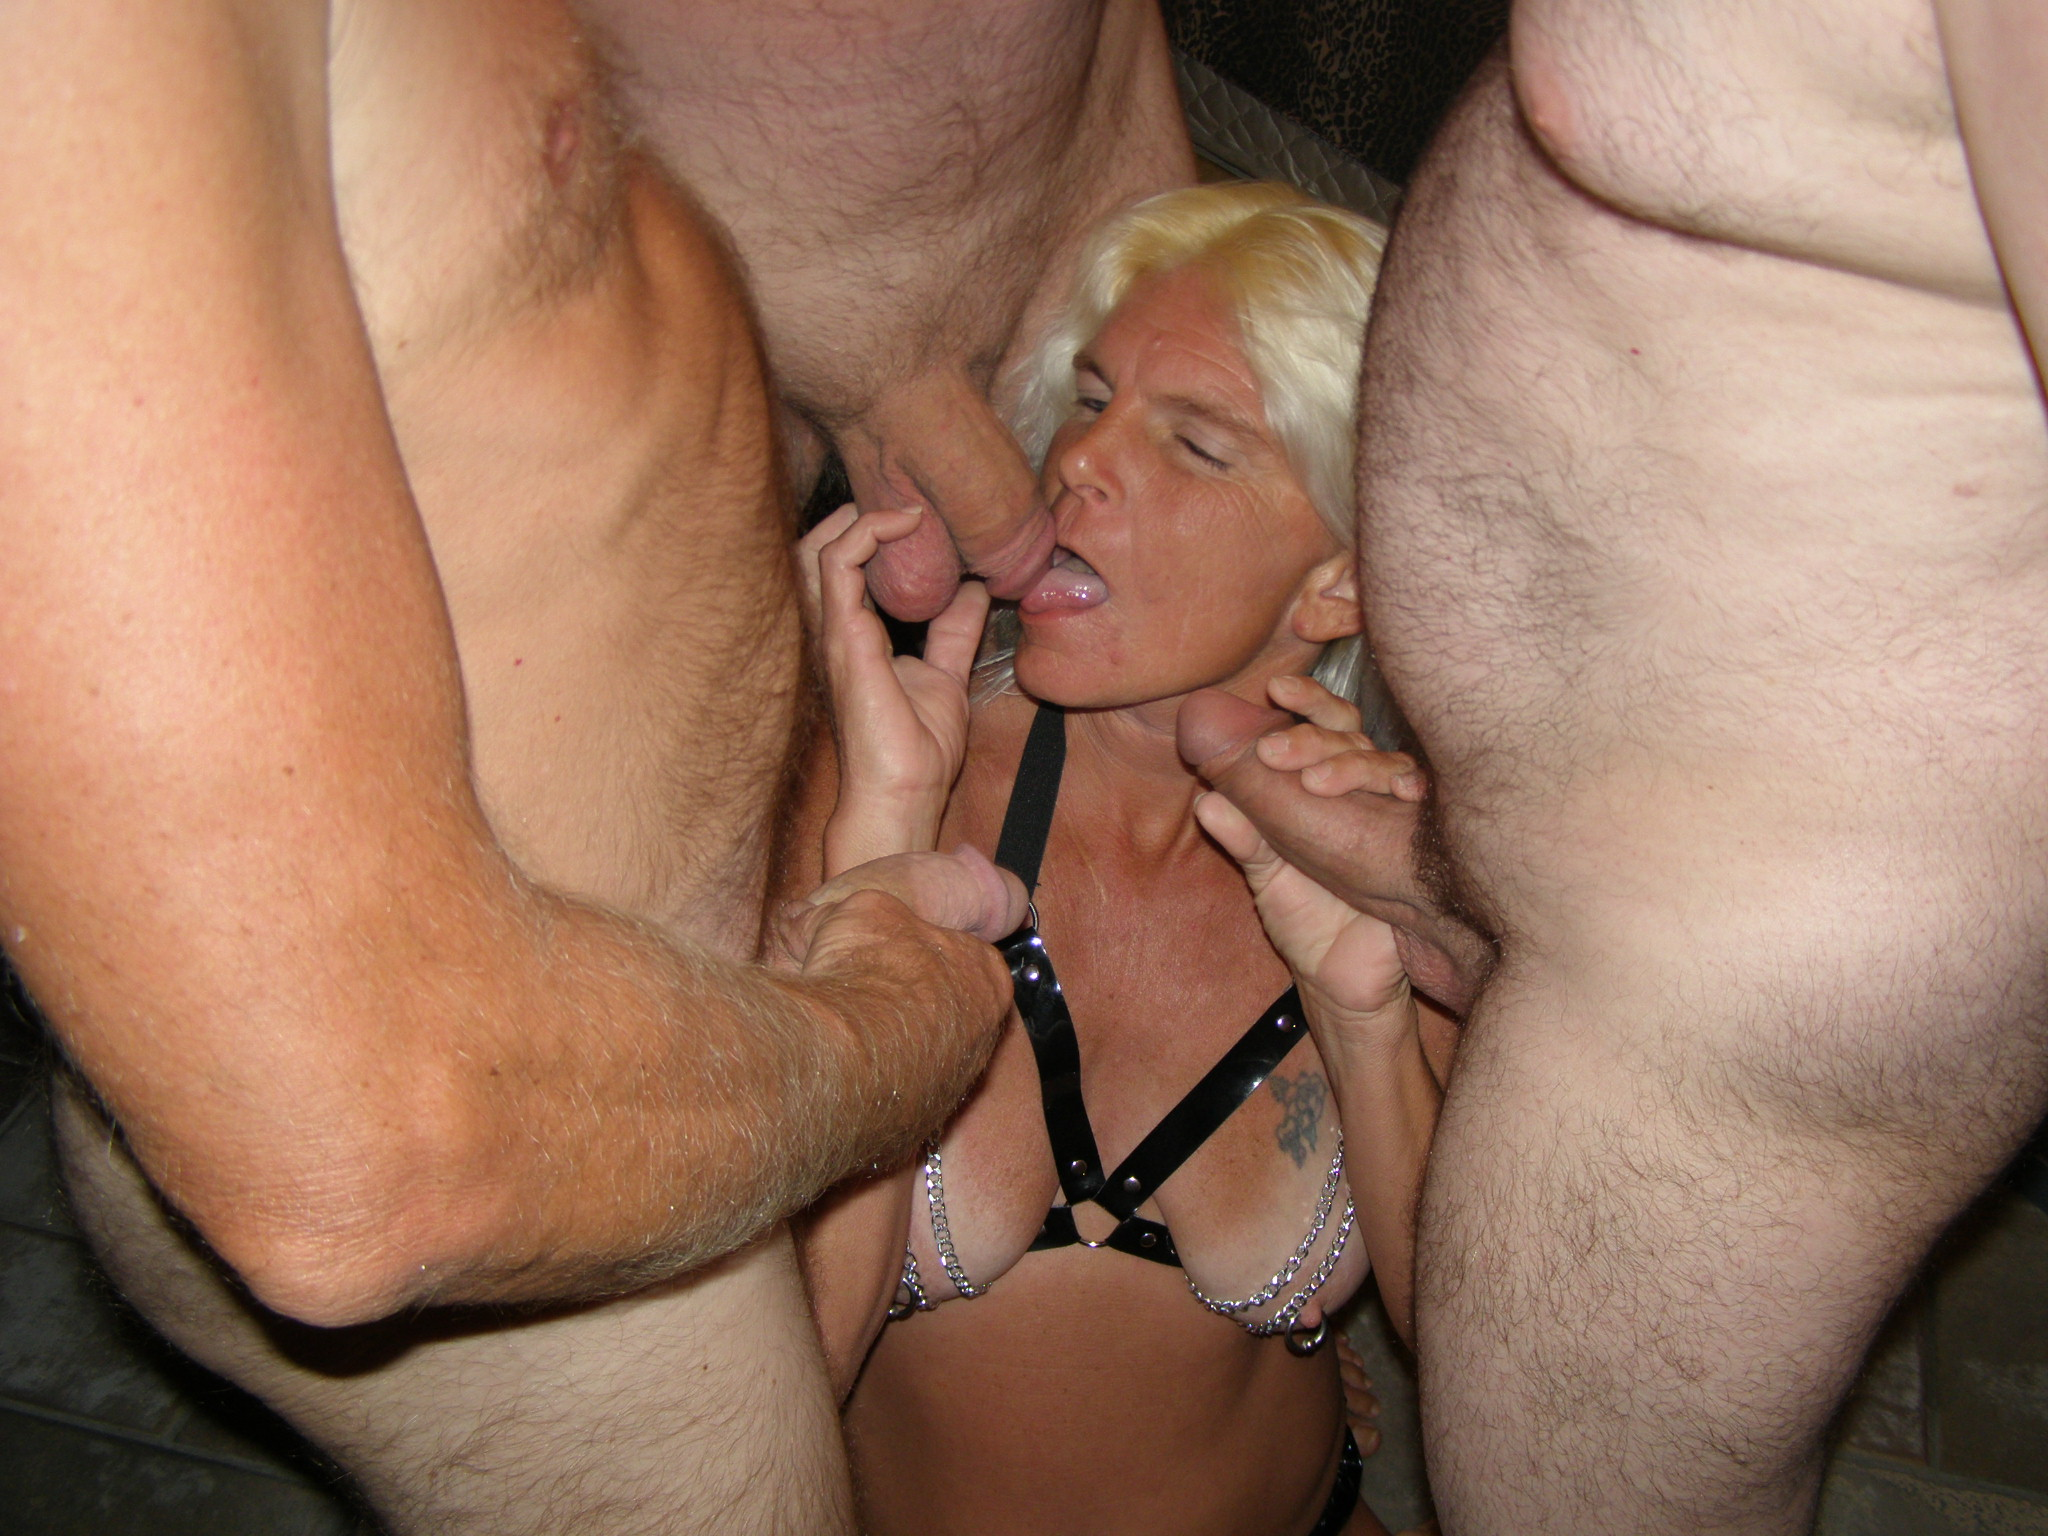 bareback gangbang slut wife - Fresh faces erotic ...